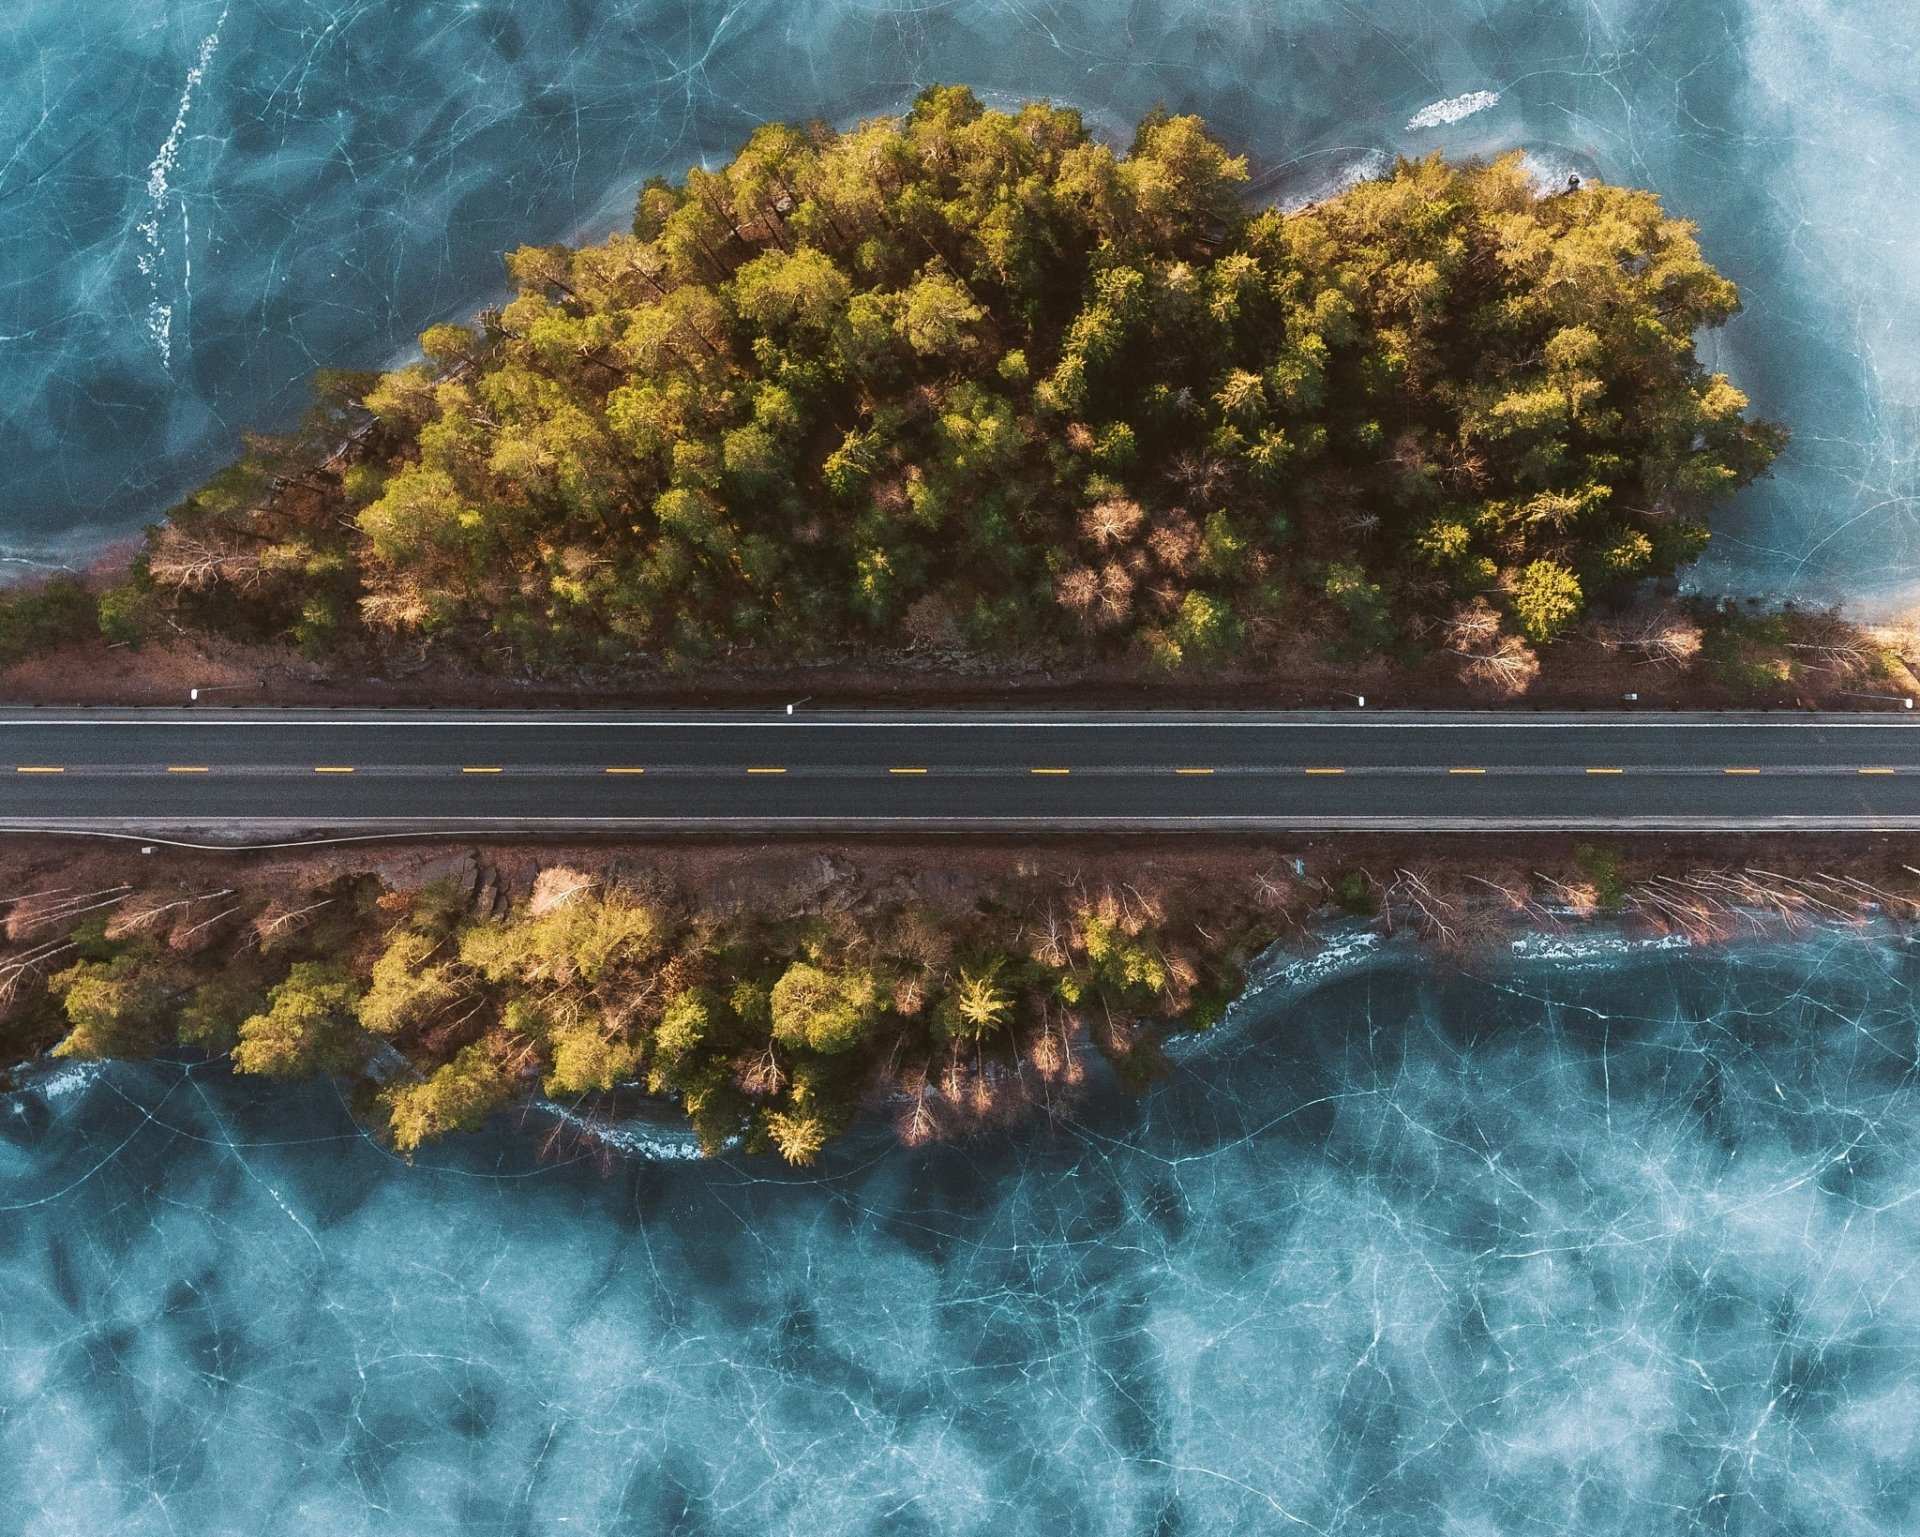 Man Made - Road  Island Aerial Frozen Wallpaper